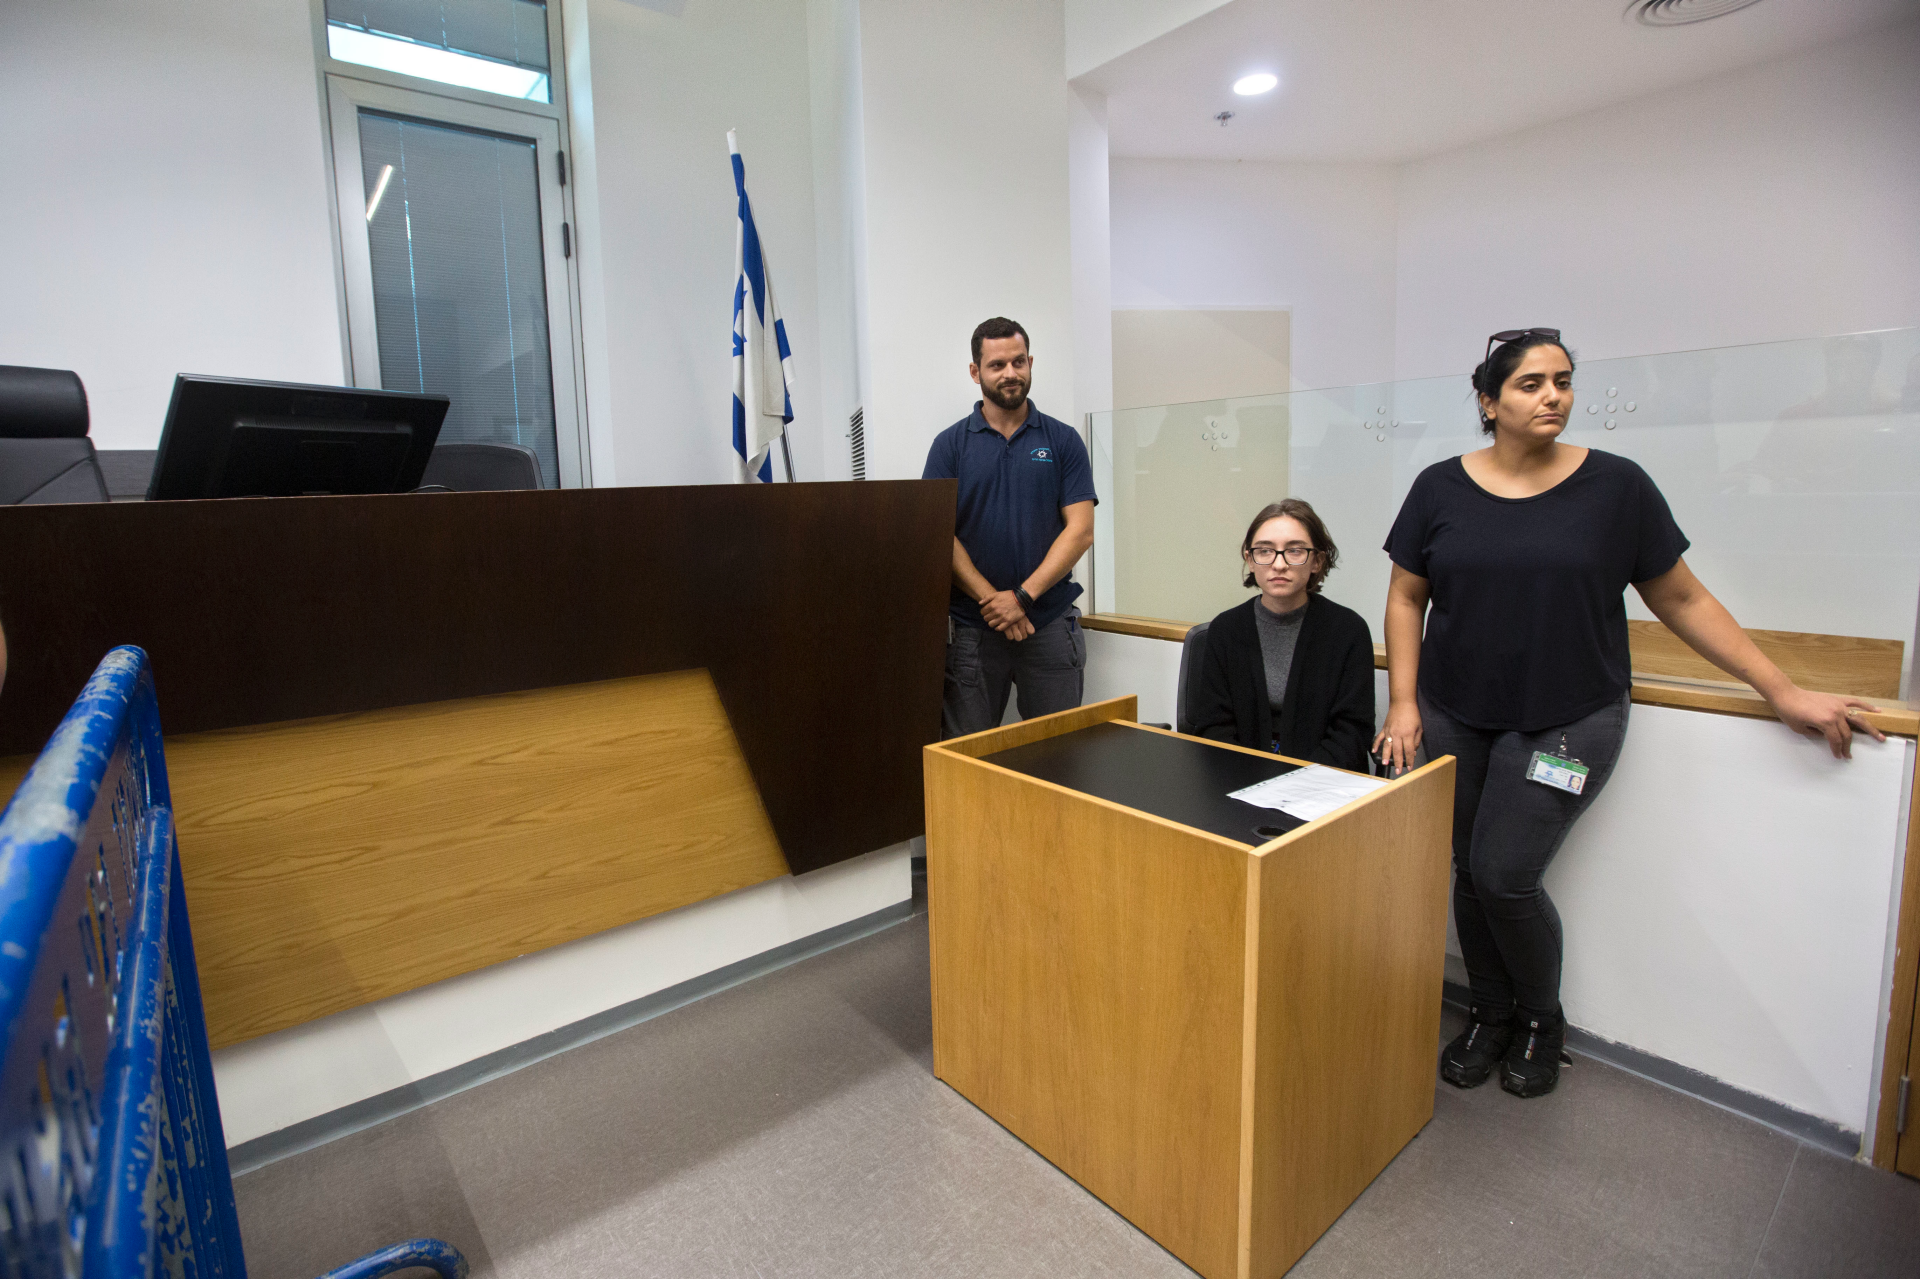 Israeli court hears US student's appeal against detention